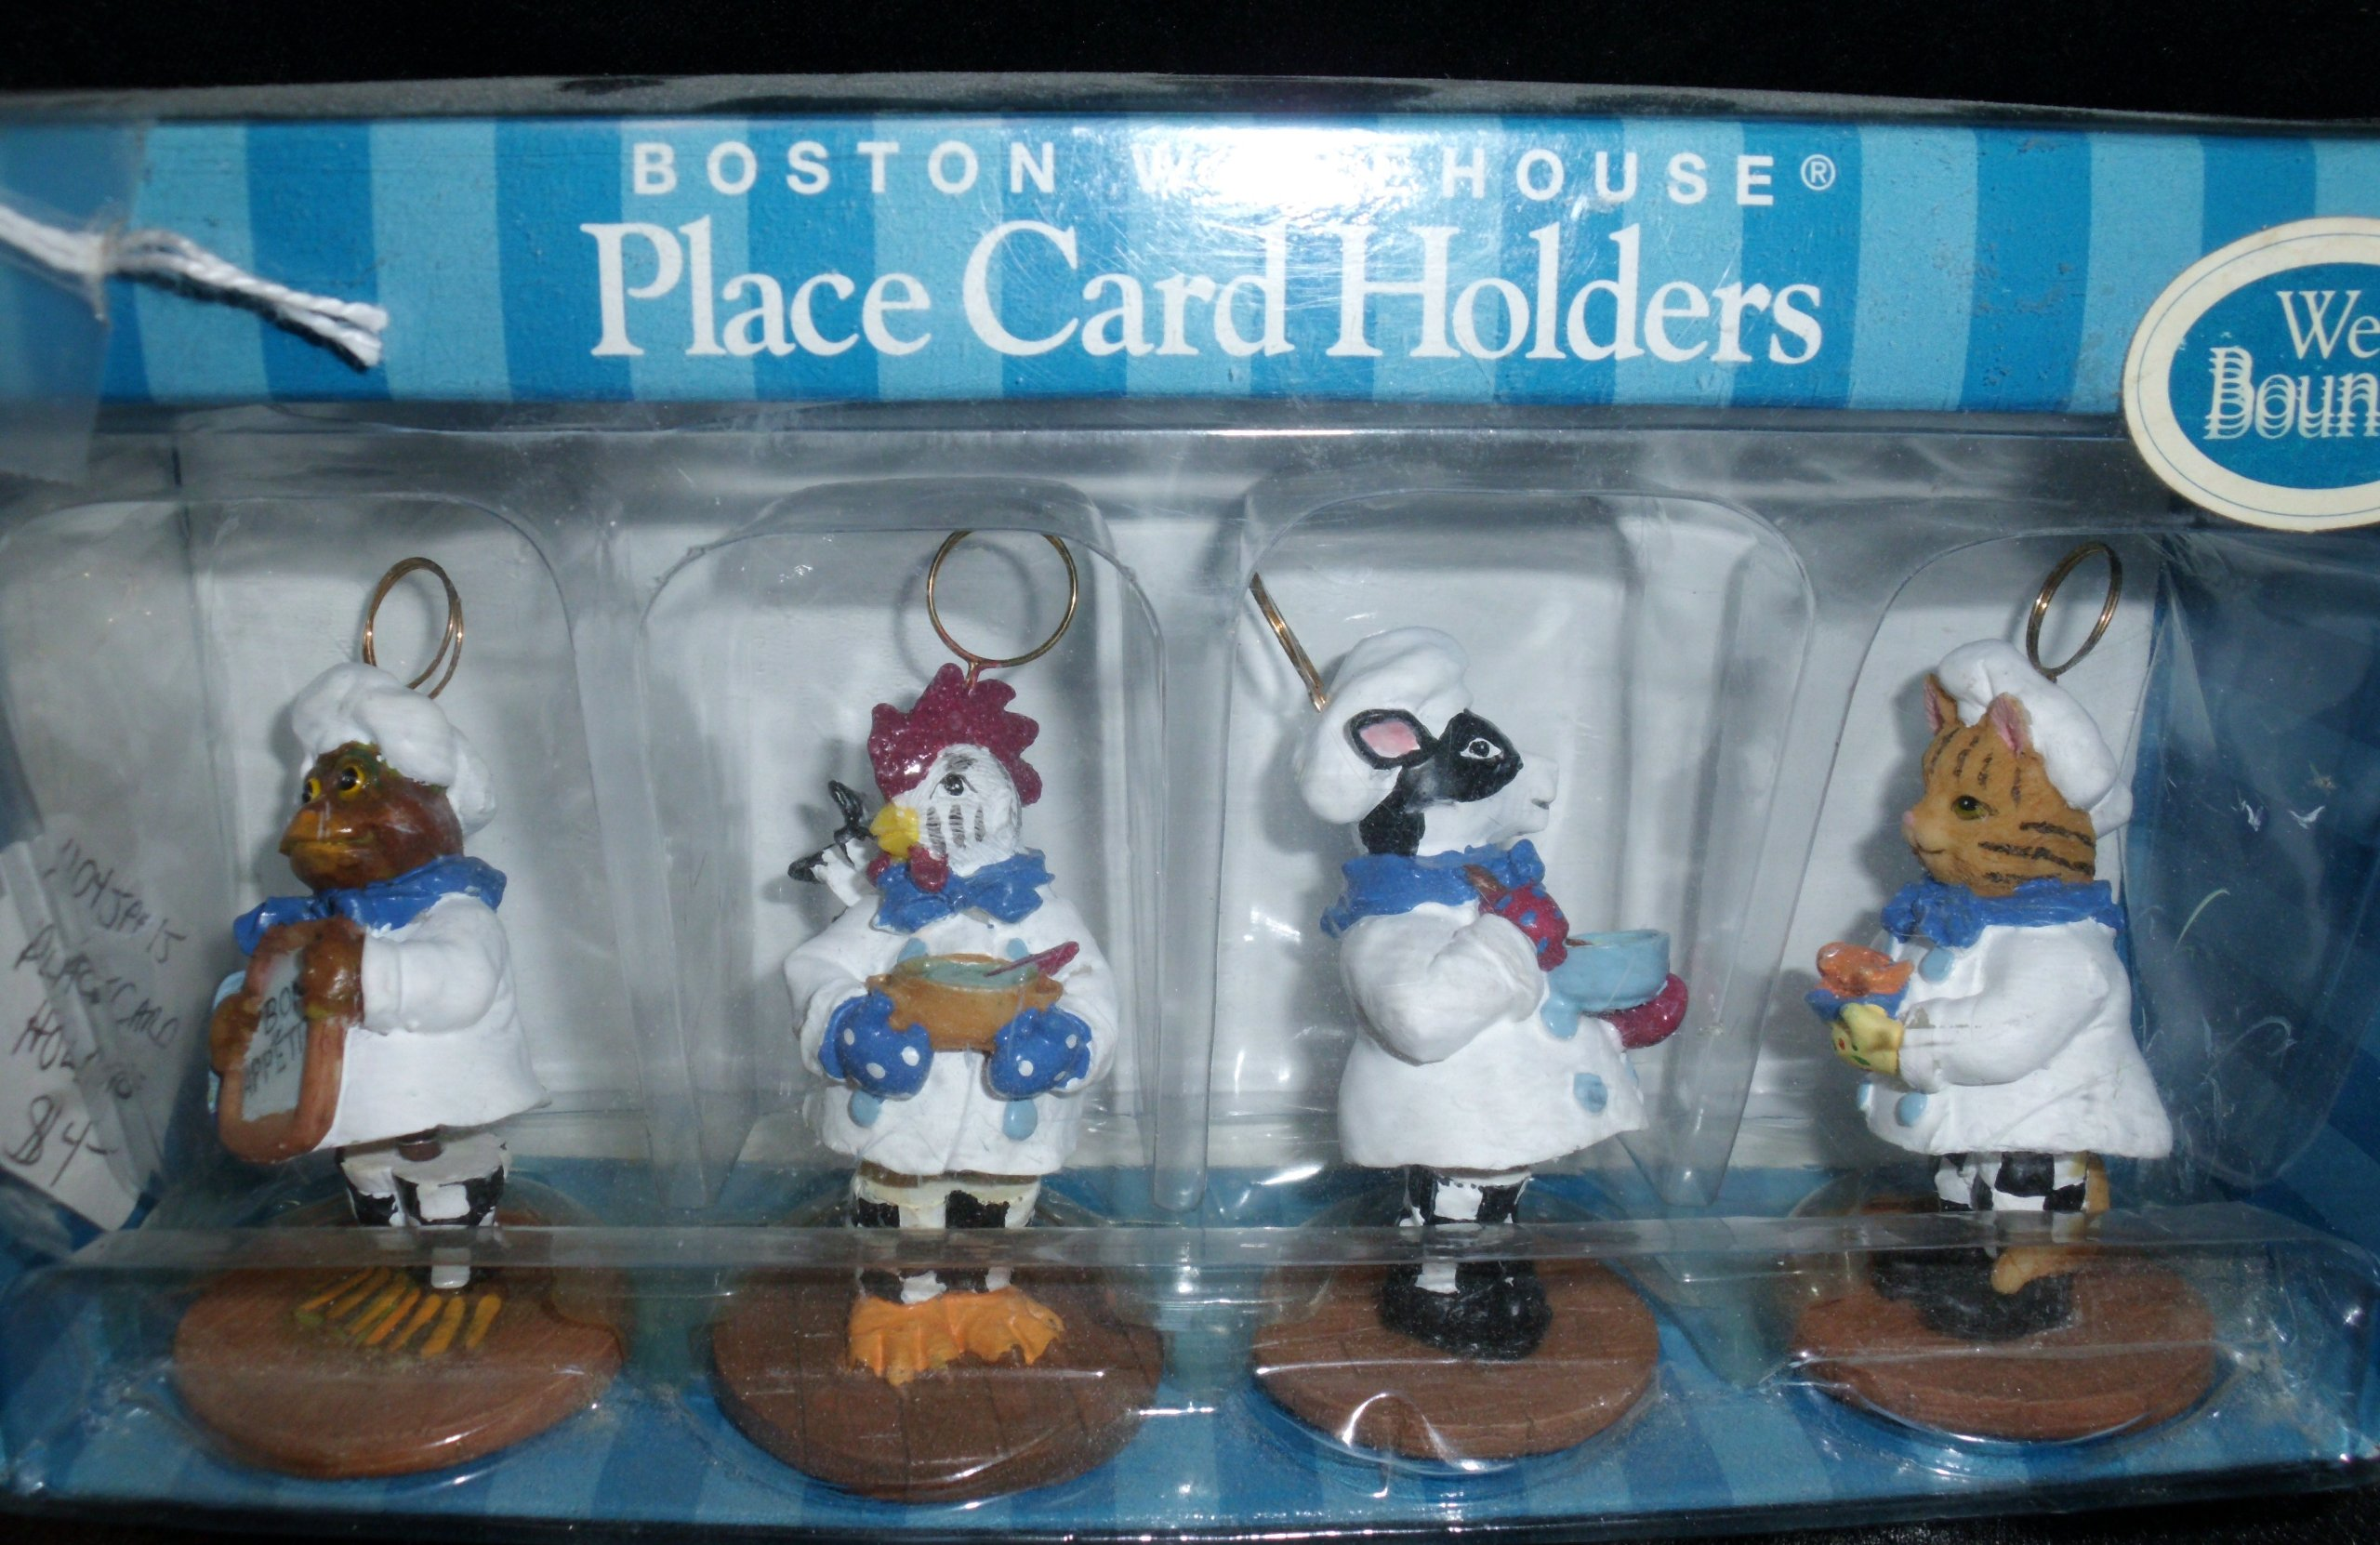 Boston Warehouse Bouncy Animal Chef Place Card Holders (set of 4) - Item 18642